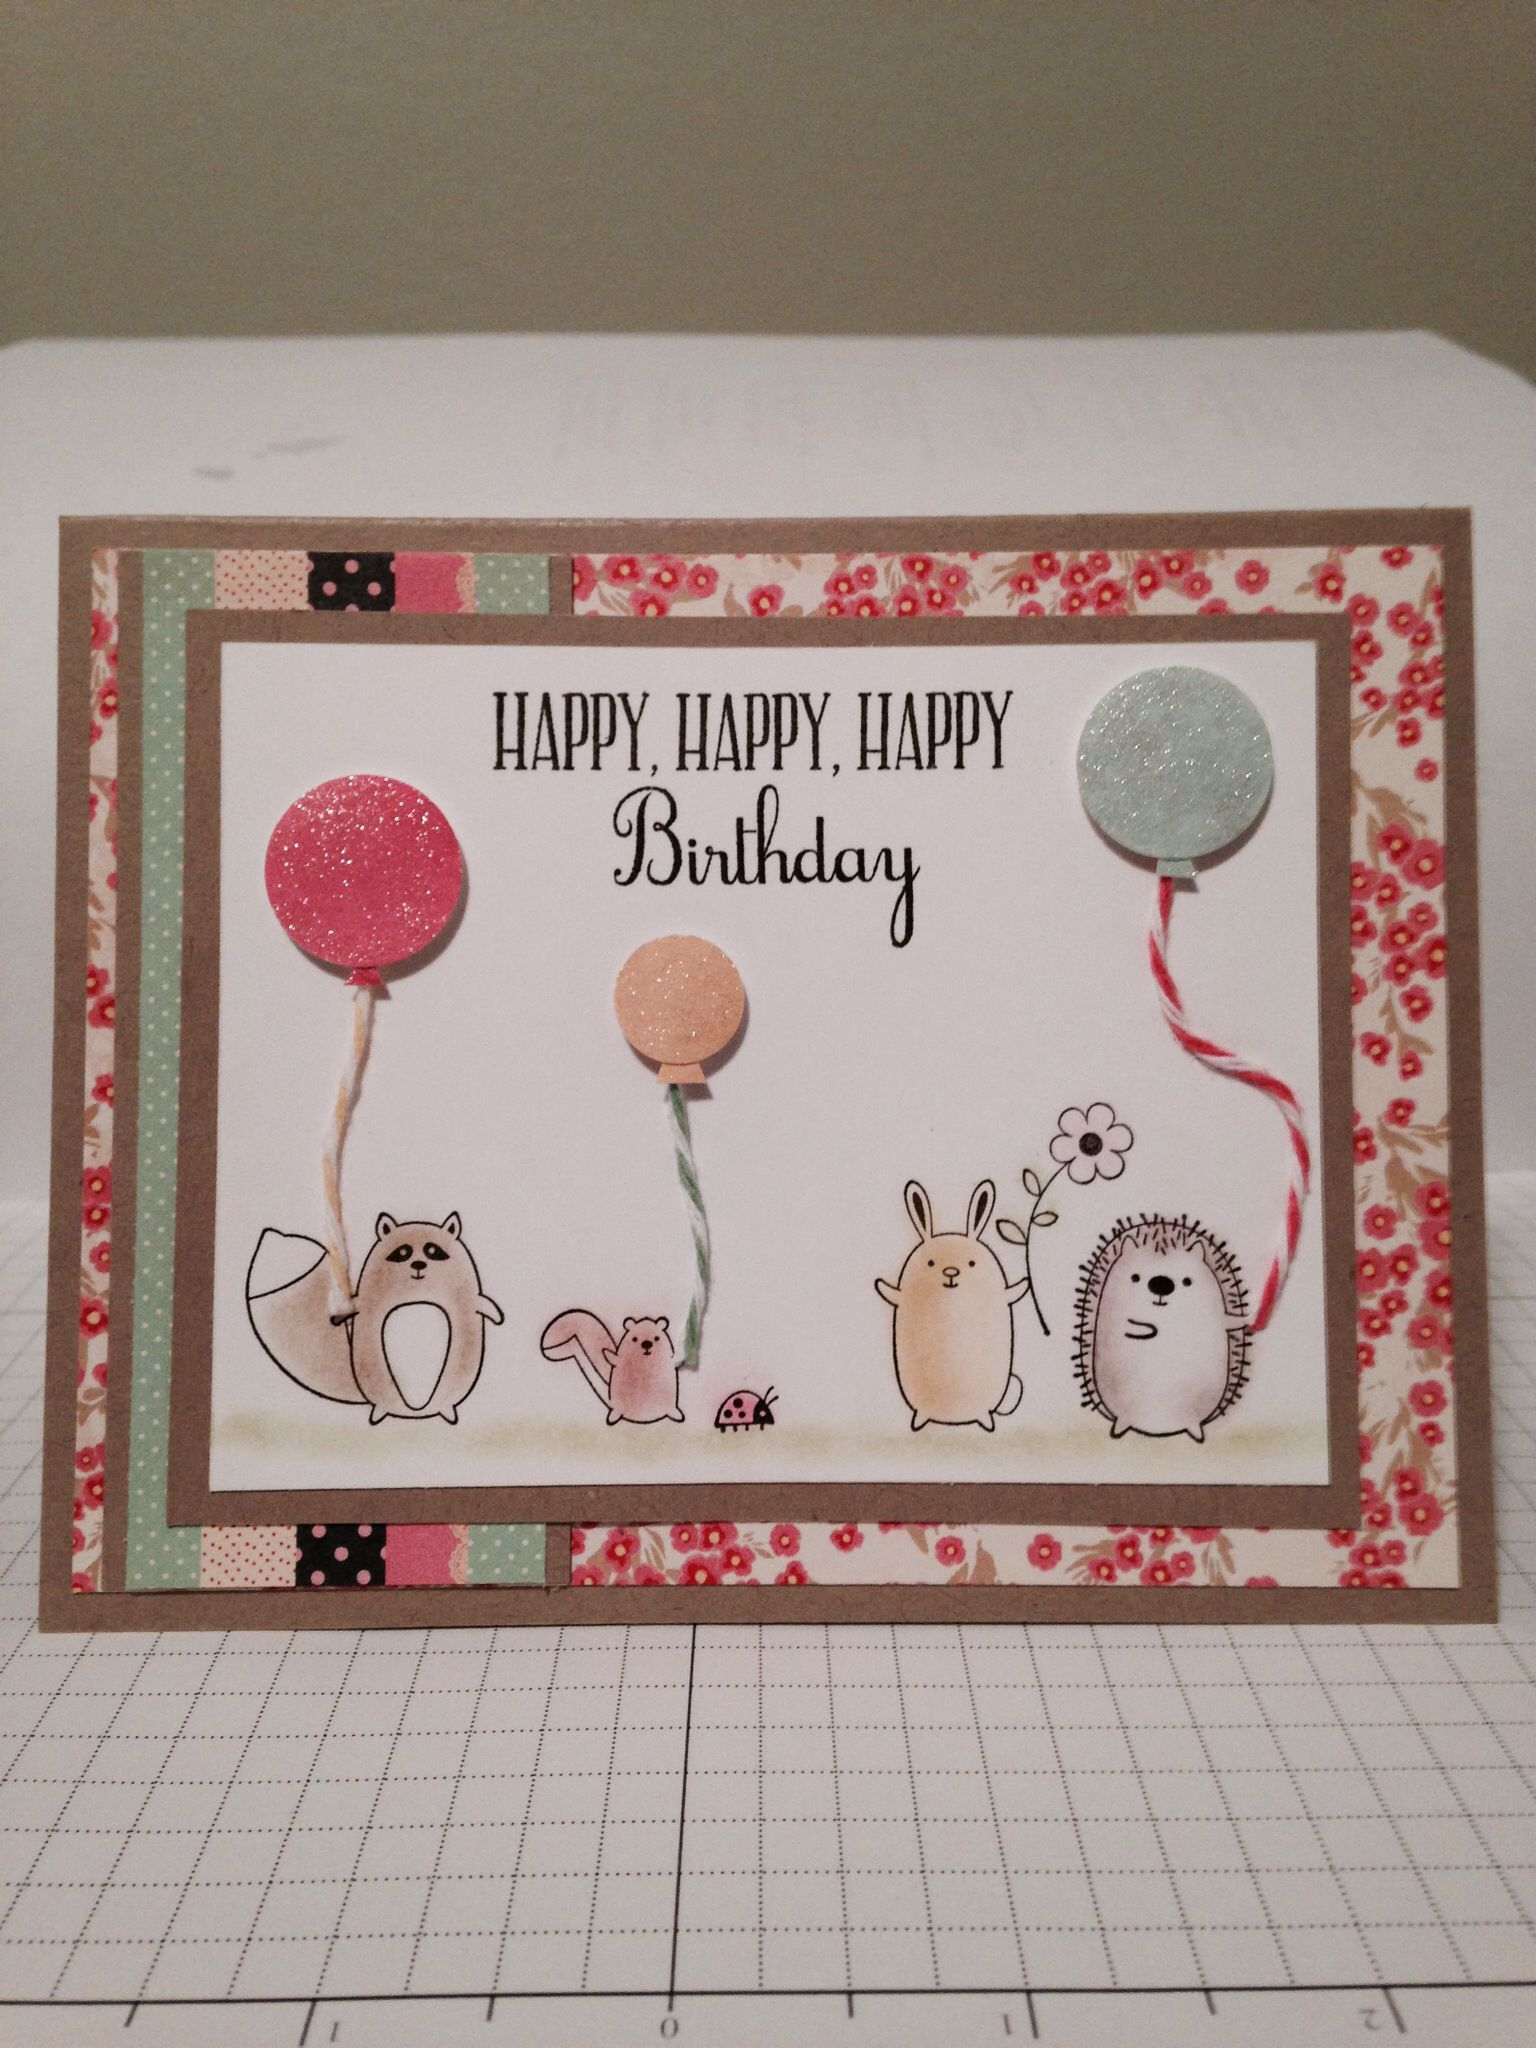 Sweet Handmade Birthday Card For A One Year Old Girl Stampin Up Lawn Fawn